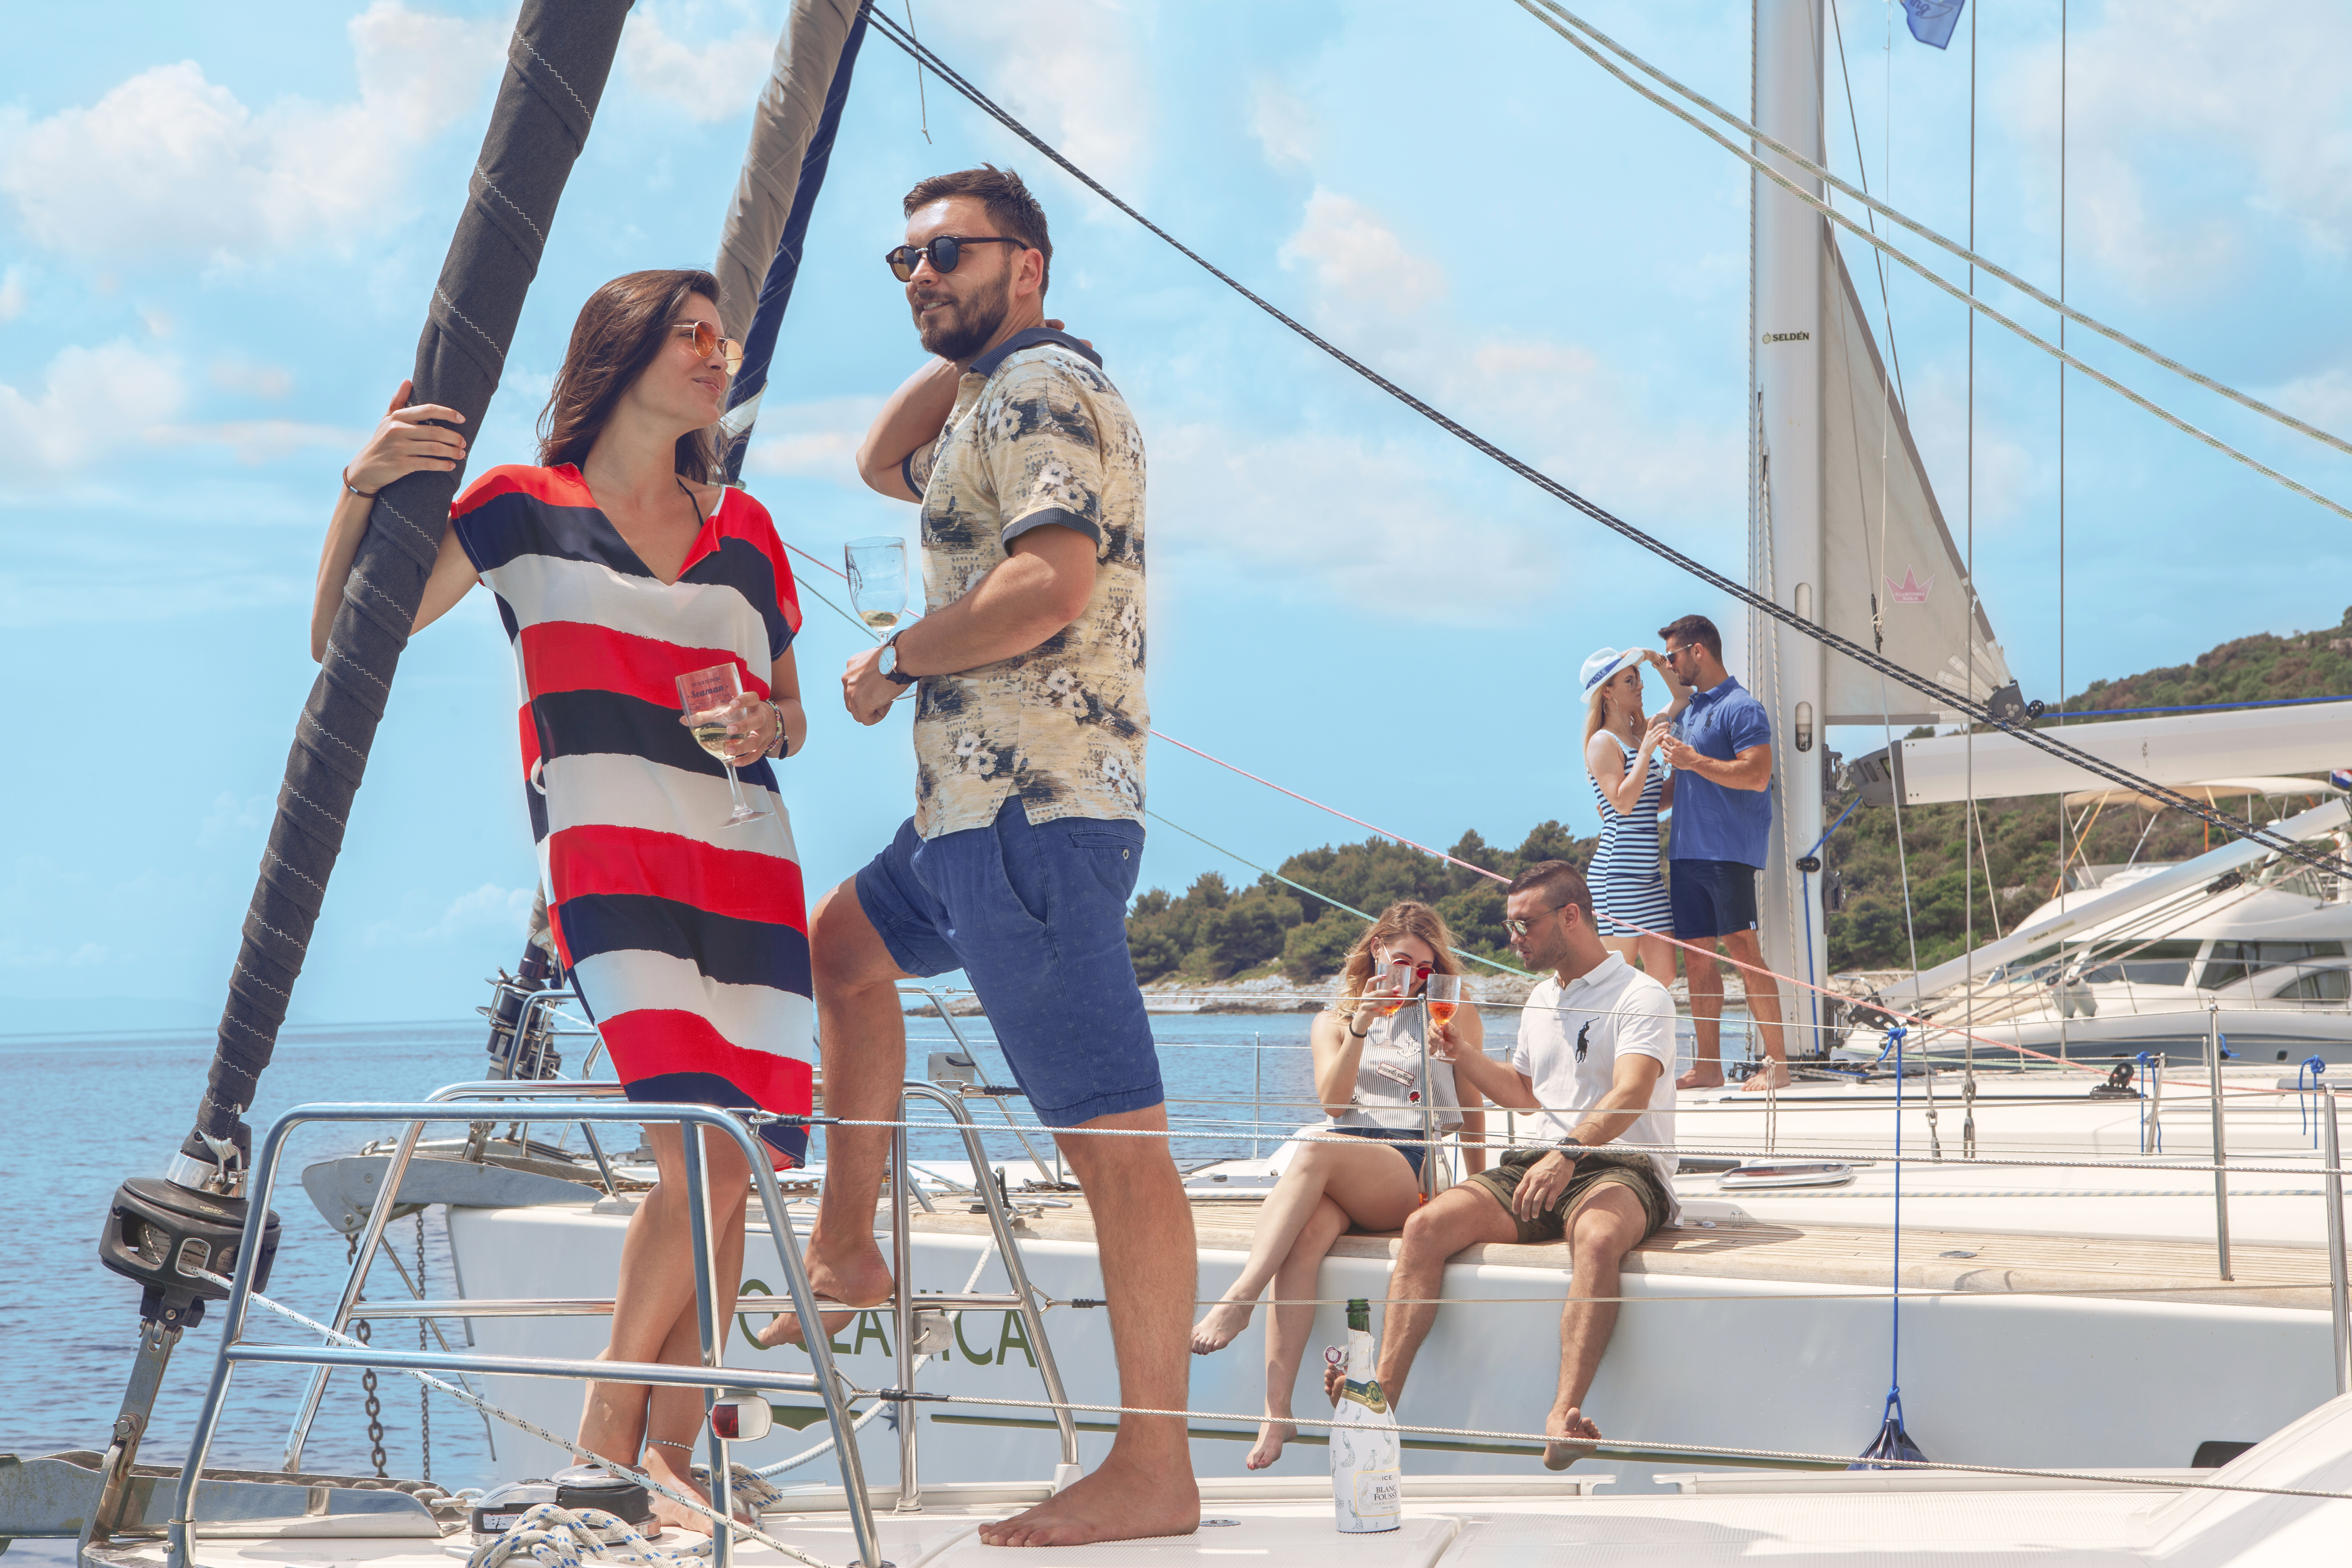 Season 2020 yacht charter bookings are now open!